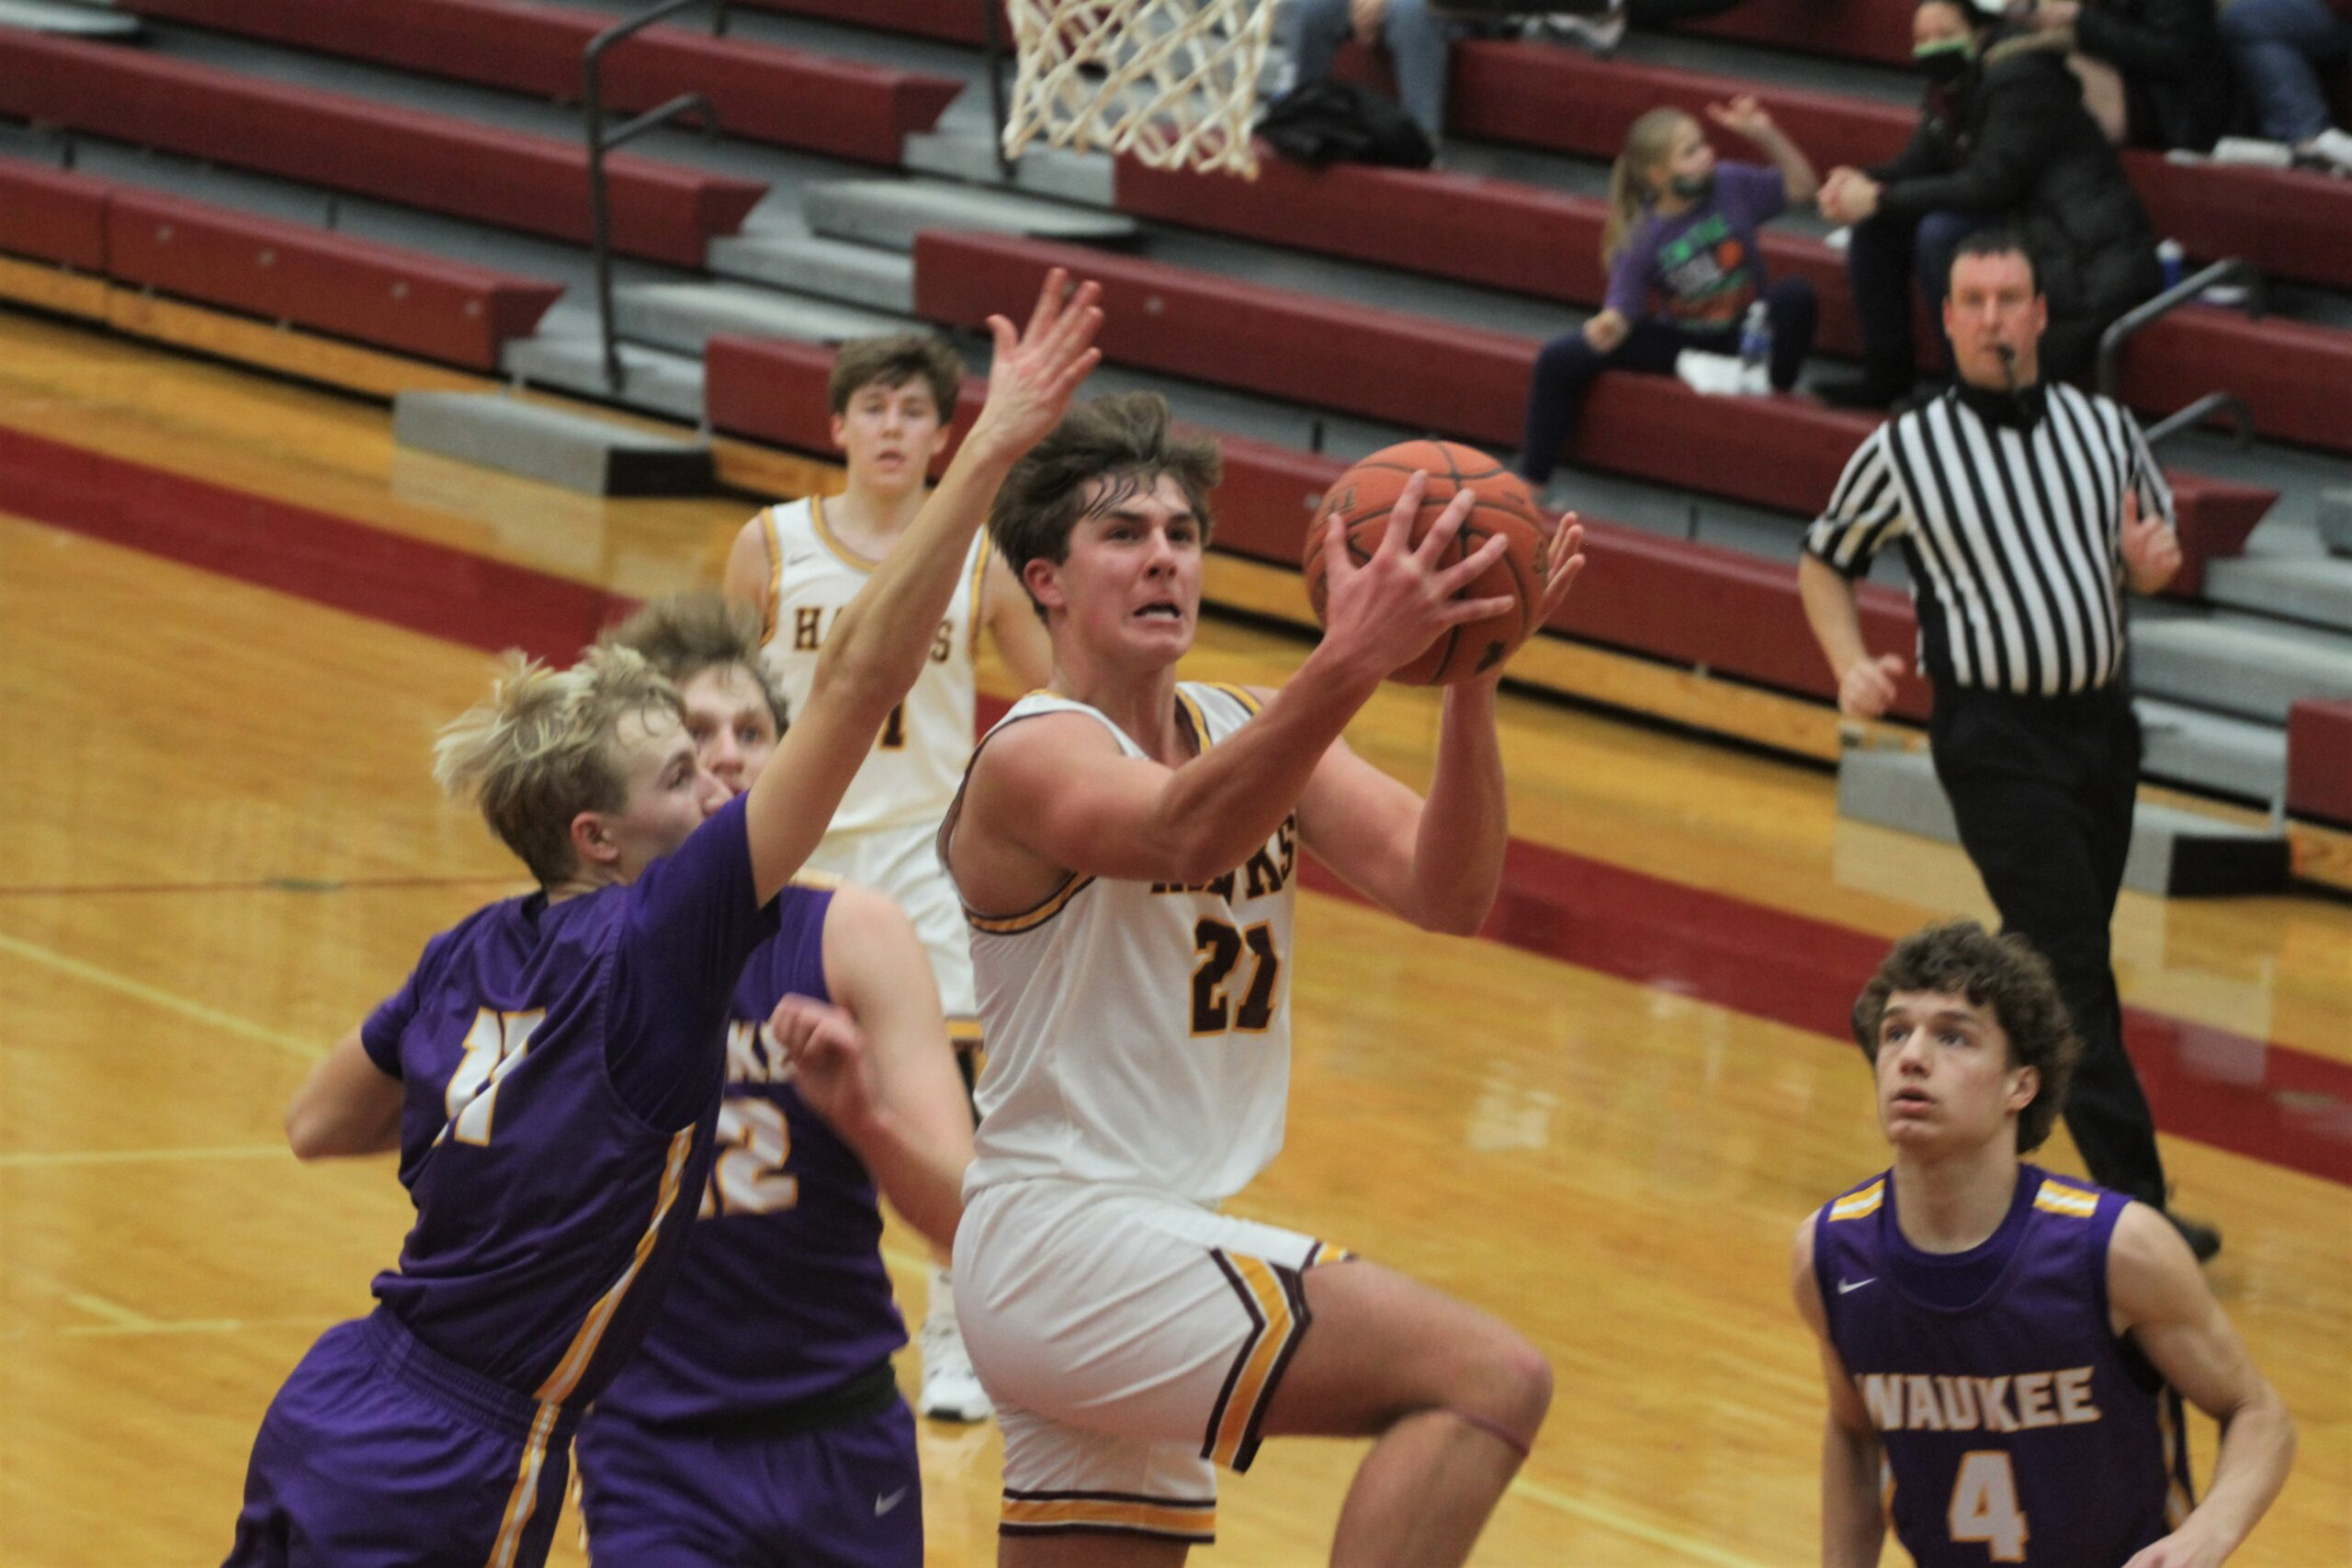 Hawks keep it close for awhile before No. 2 Waukee pulls away in 2nd half